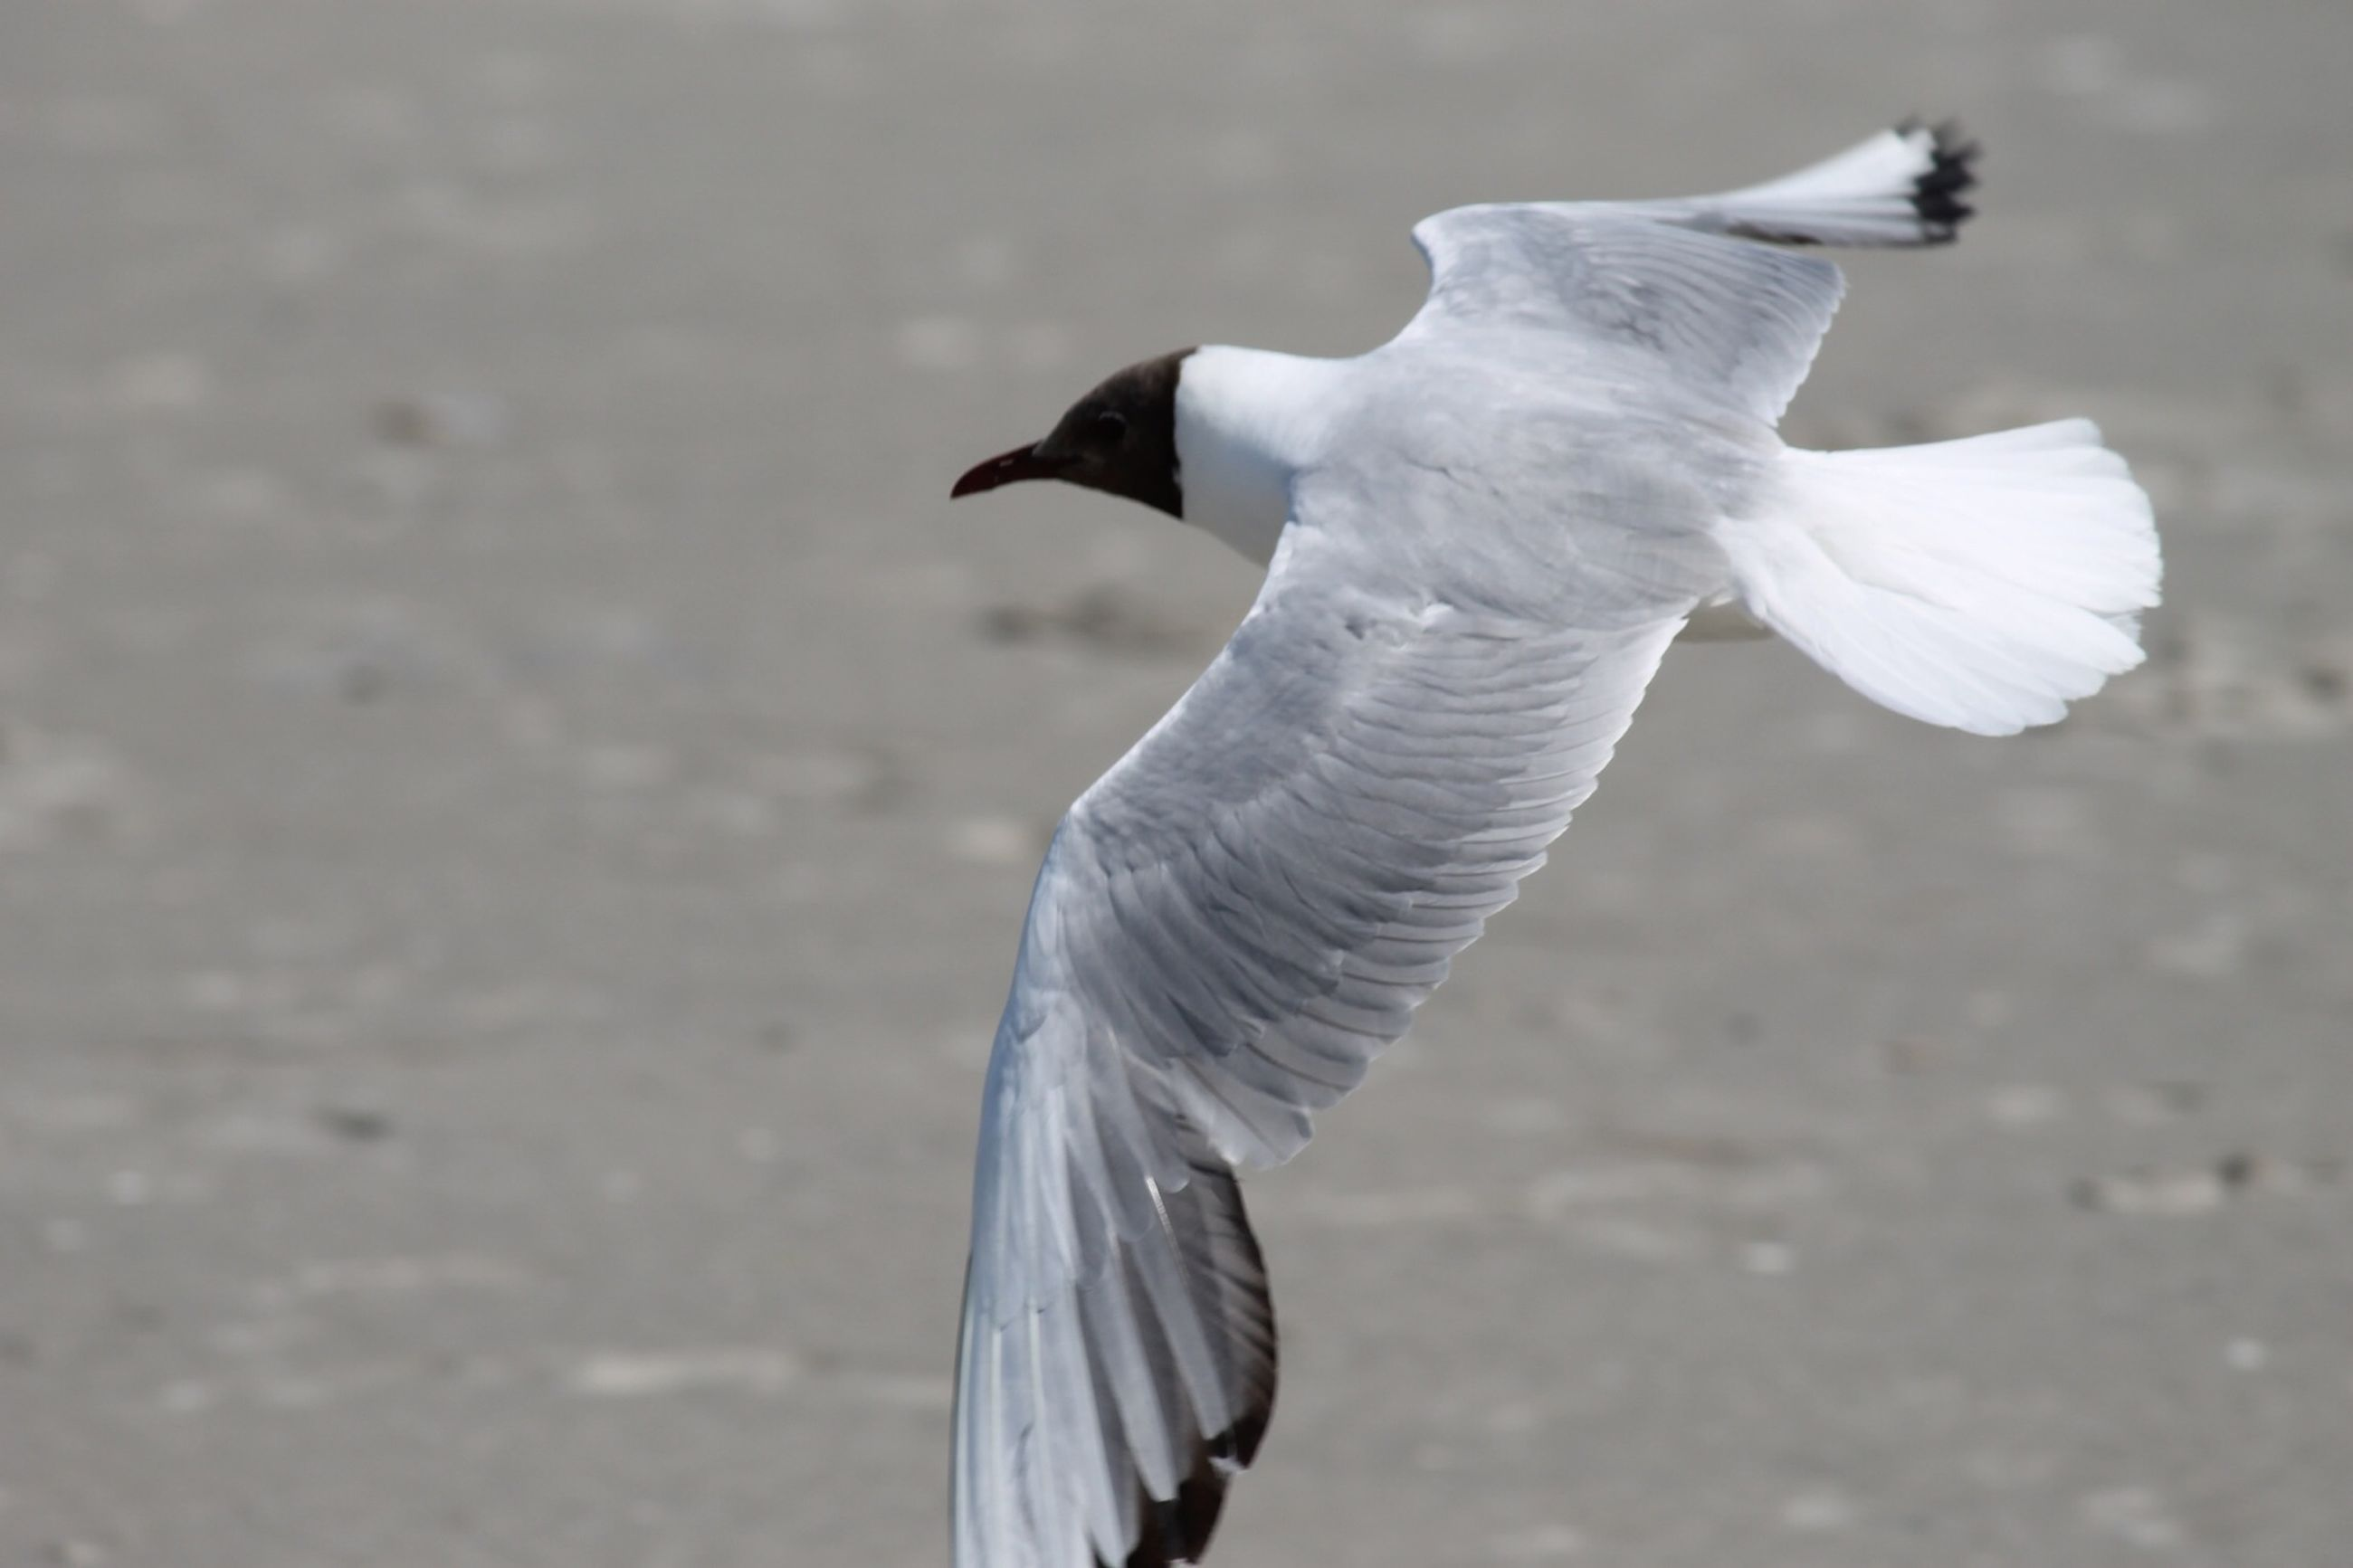 bird, animal themes, one animal, animals in the wild, spread wings, focus on foreground, full length, wildlife, flying, seagull, white color, side view, rear view, standing, one person, feather, beak, day, close-up, sunlight